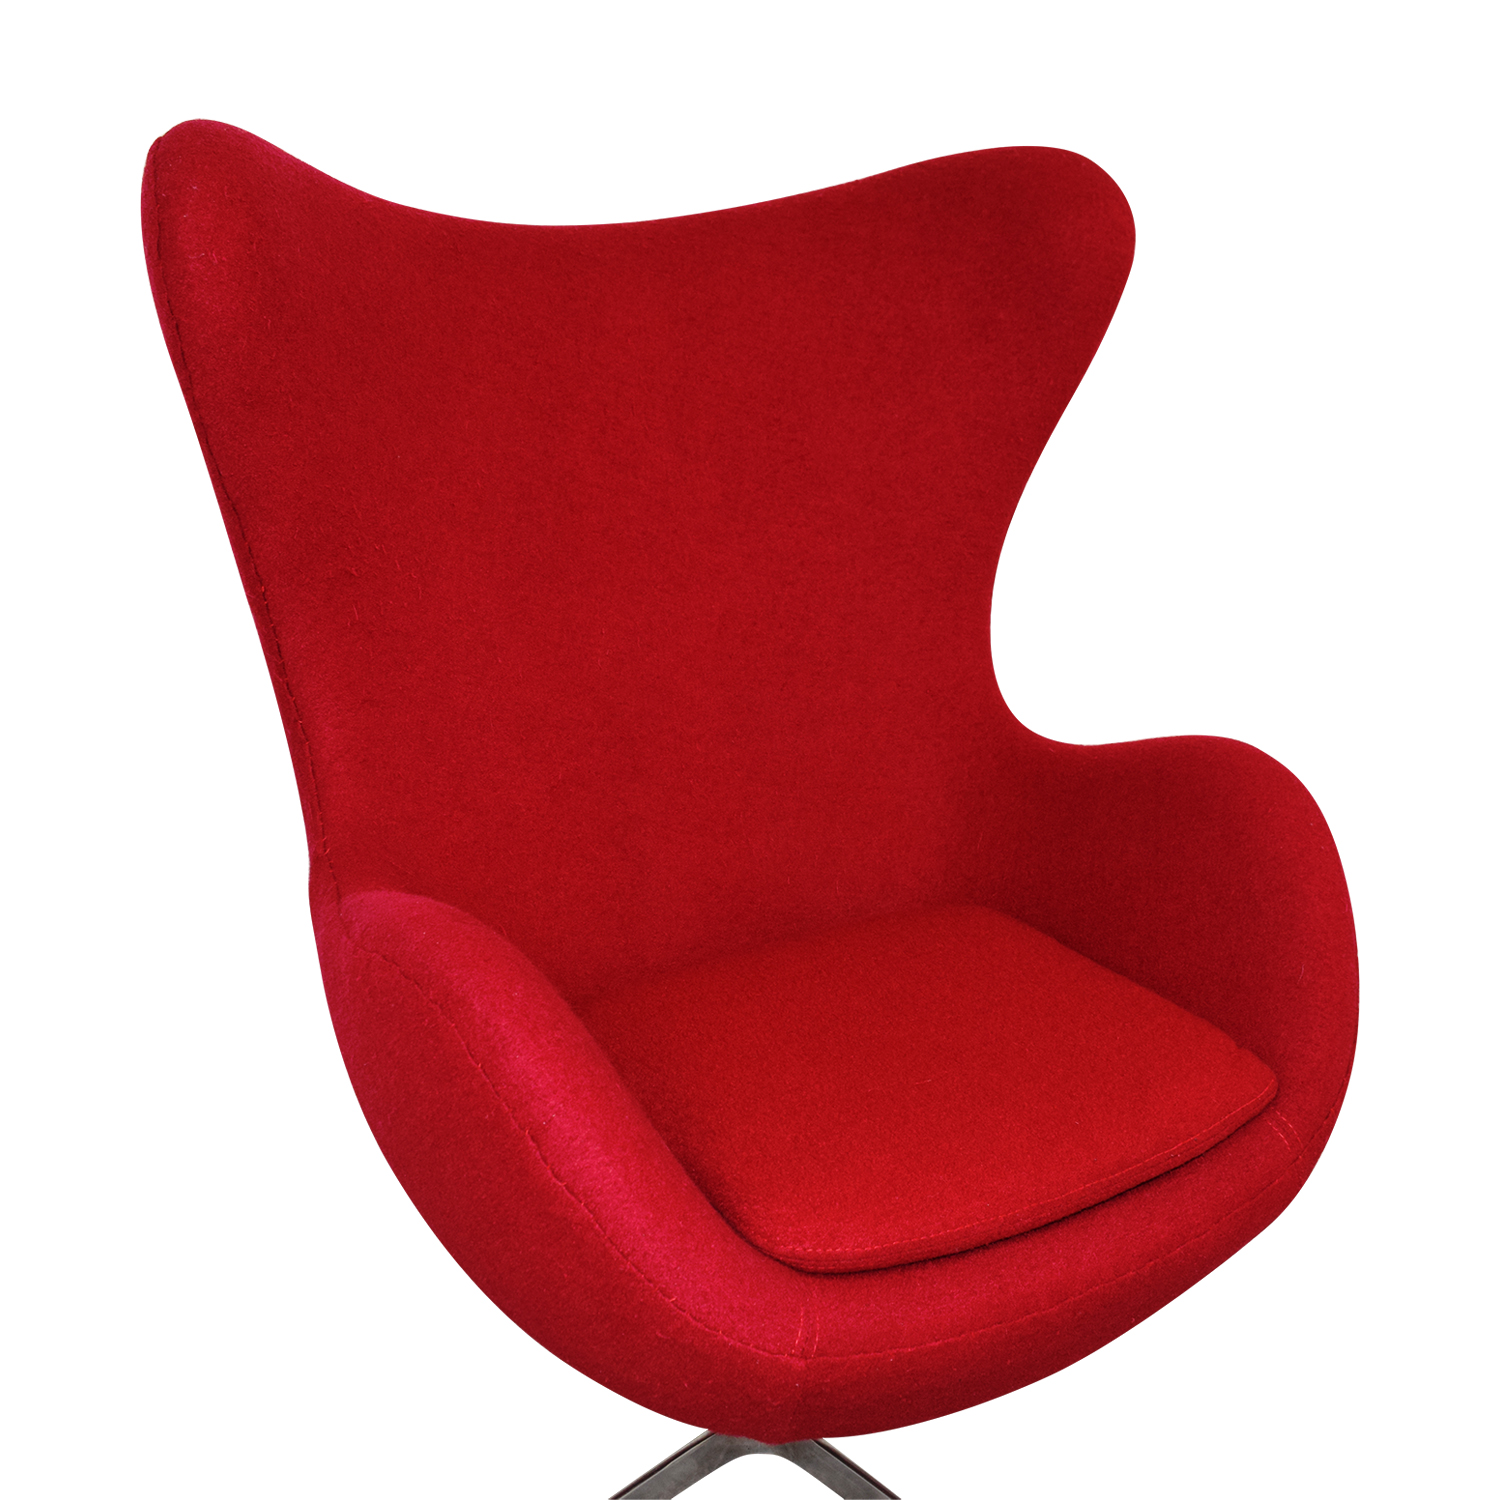 Buy Egg Chair 72 Off Red And Chrome Egg Chair Chairs